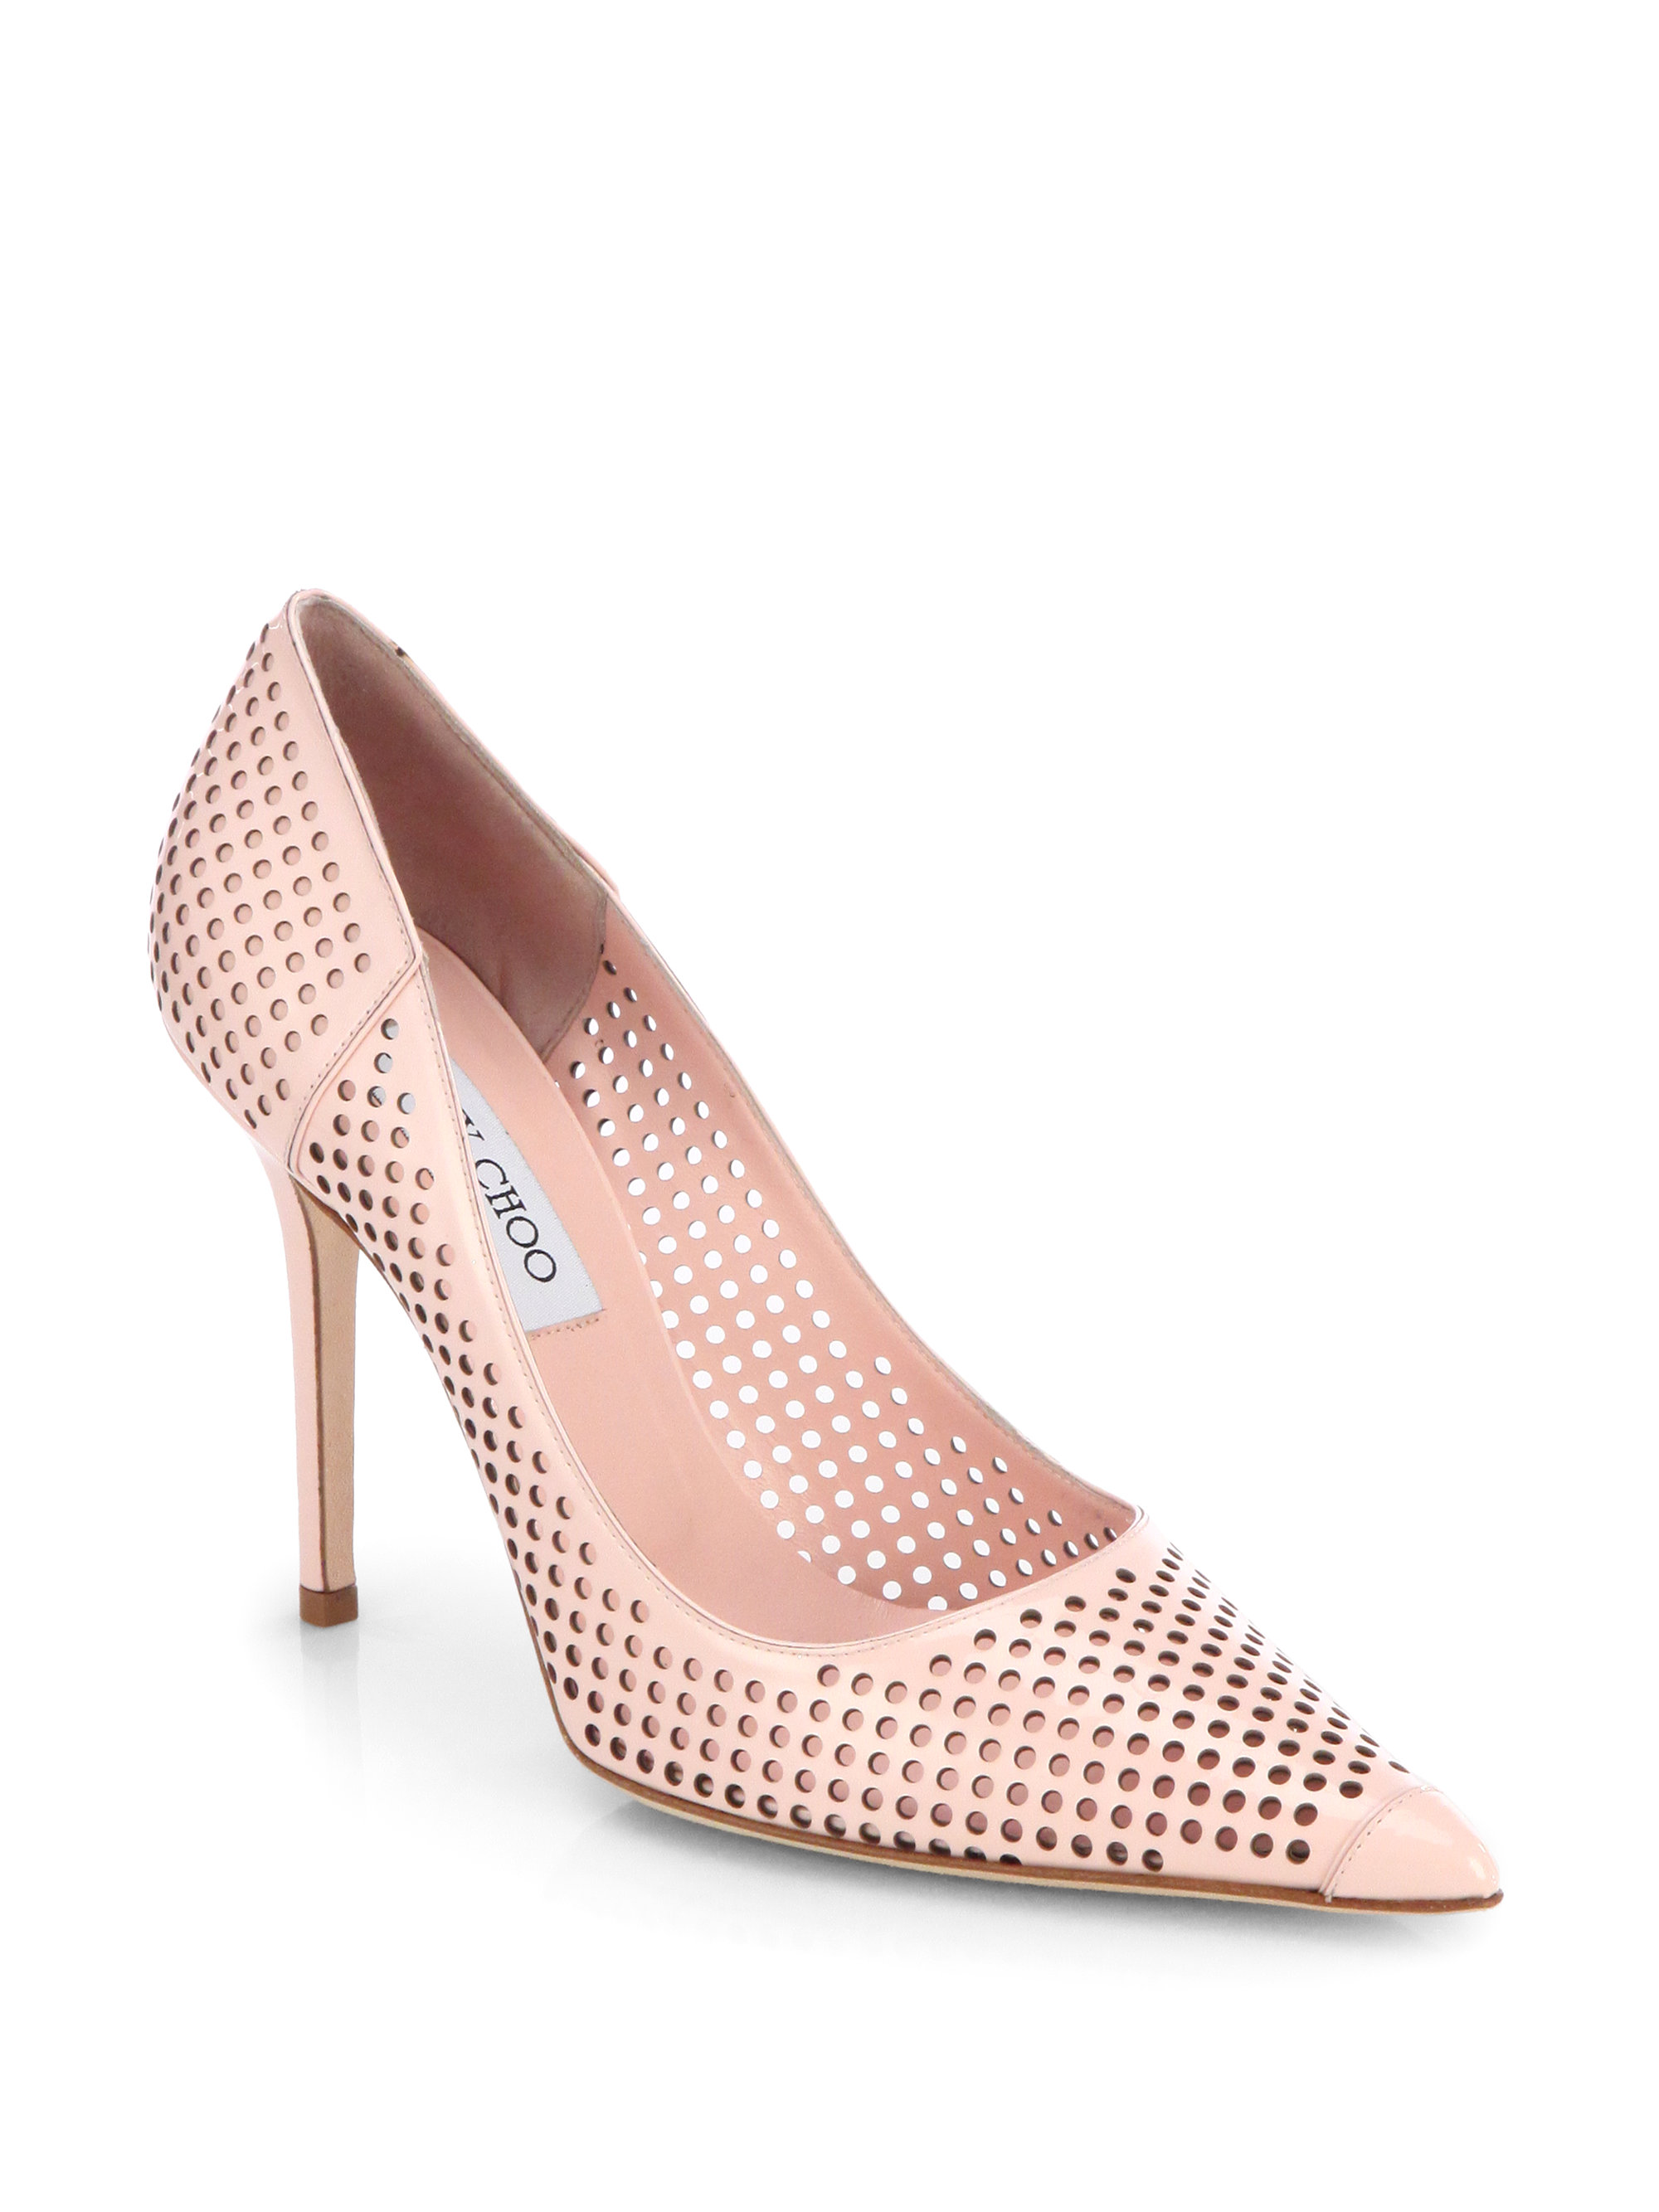 best store to get online Jimmy Choo Perforated Patent Leather Pumps cheap sale footlocker finishline shop for sale exclusive cheap price newest cheap price MQewvew3Bs